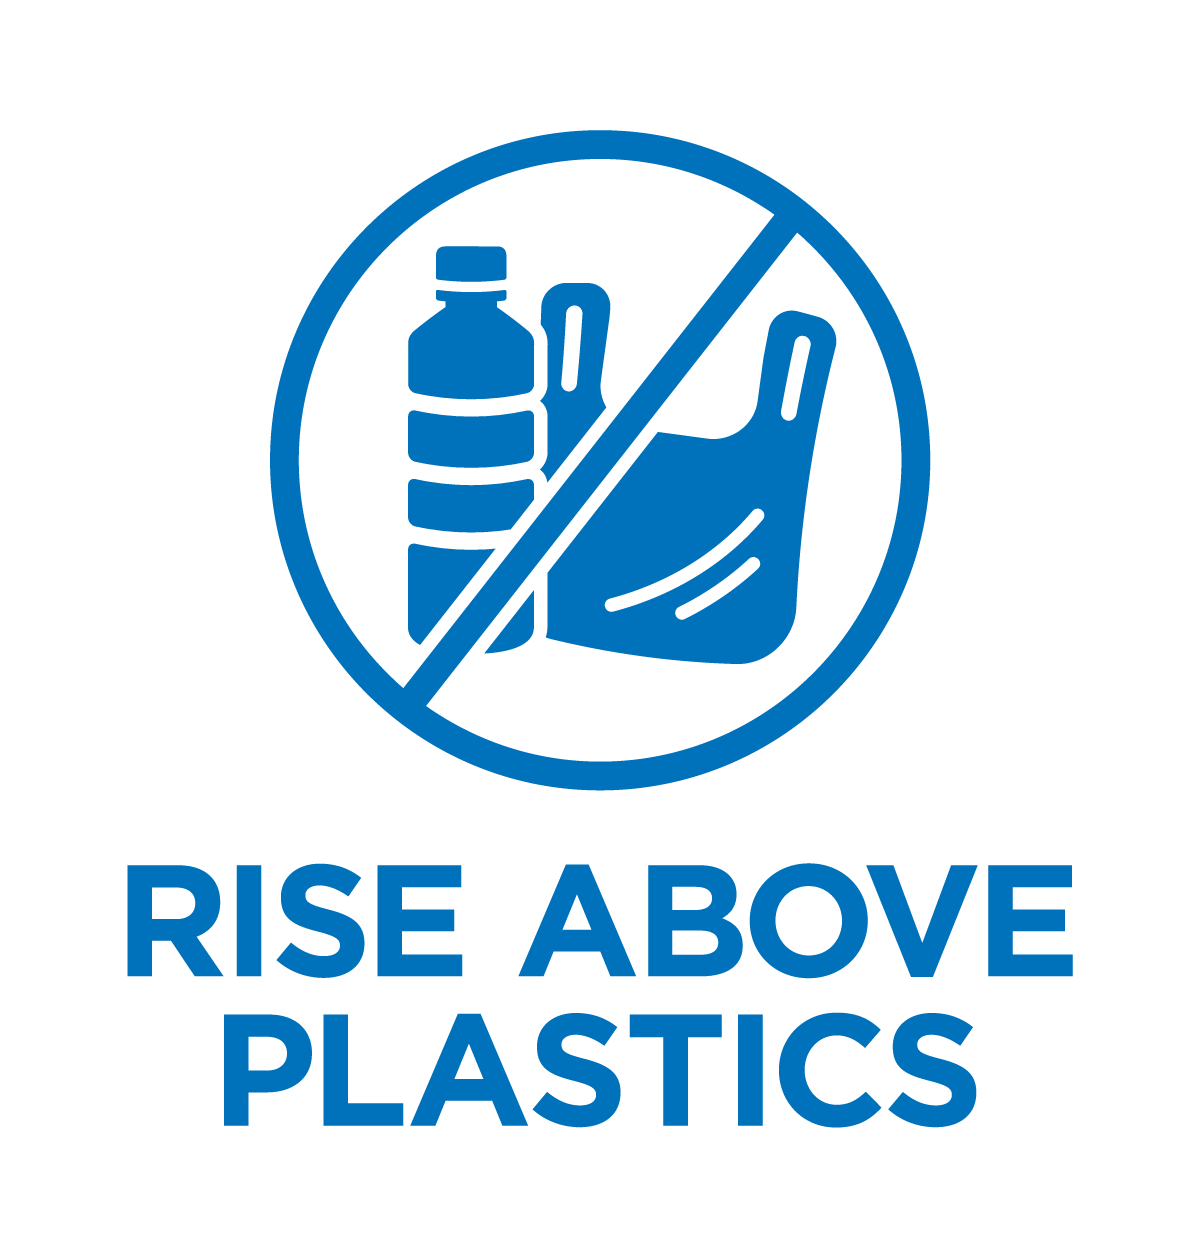 https://cocoabeach.surfrider.org/wp-content/uploads/2017/11/Rise-Above-Plastics-Icon-Vertical.png